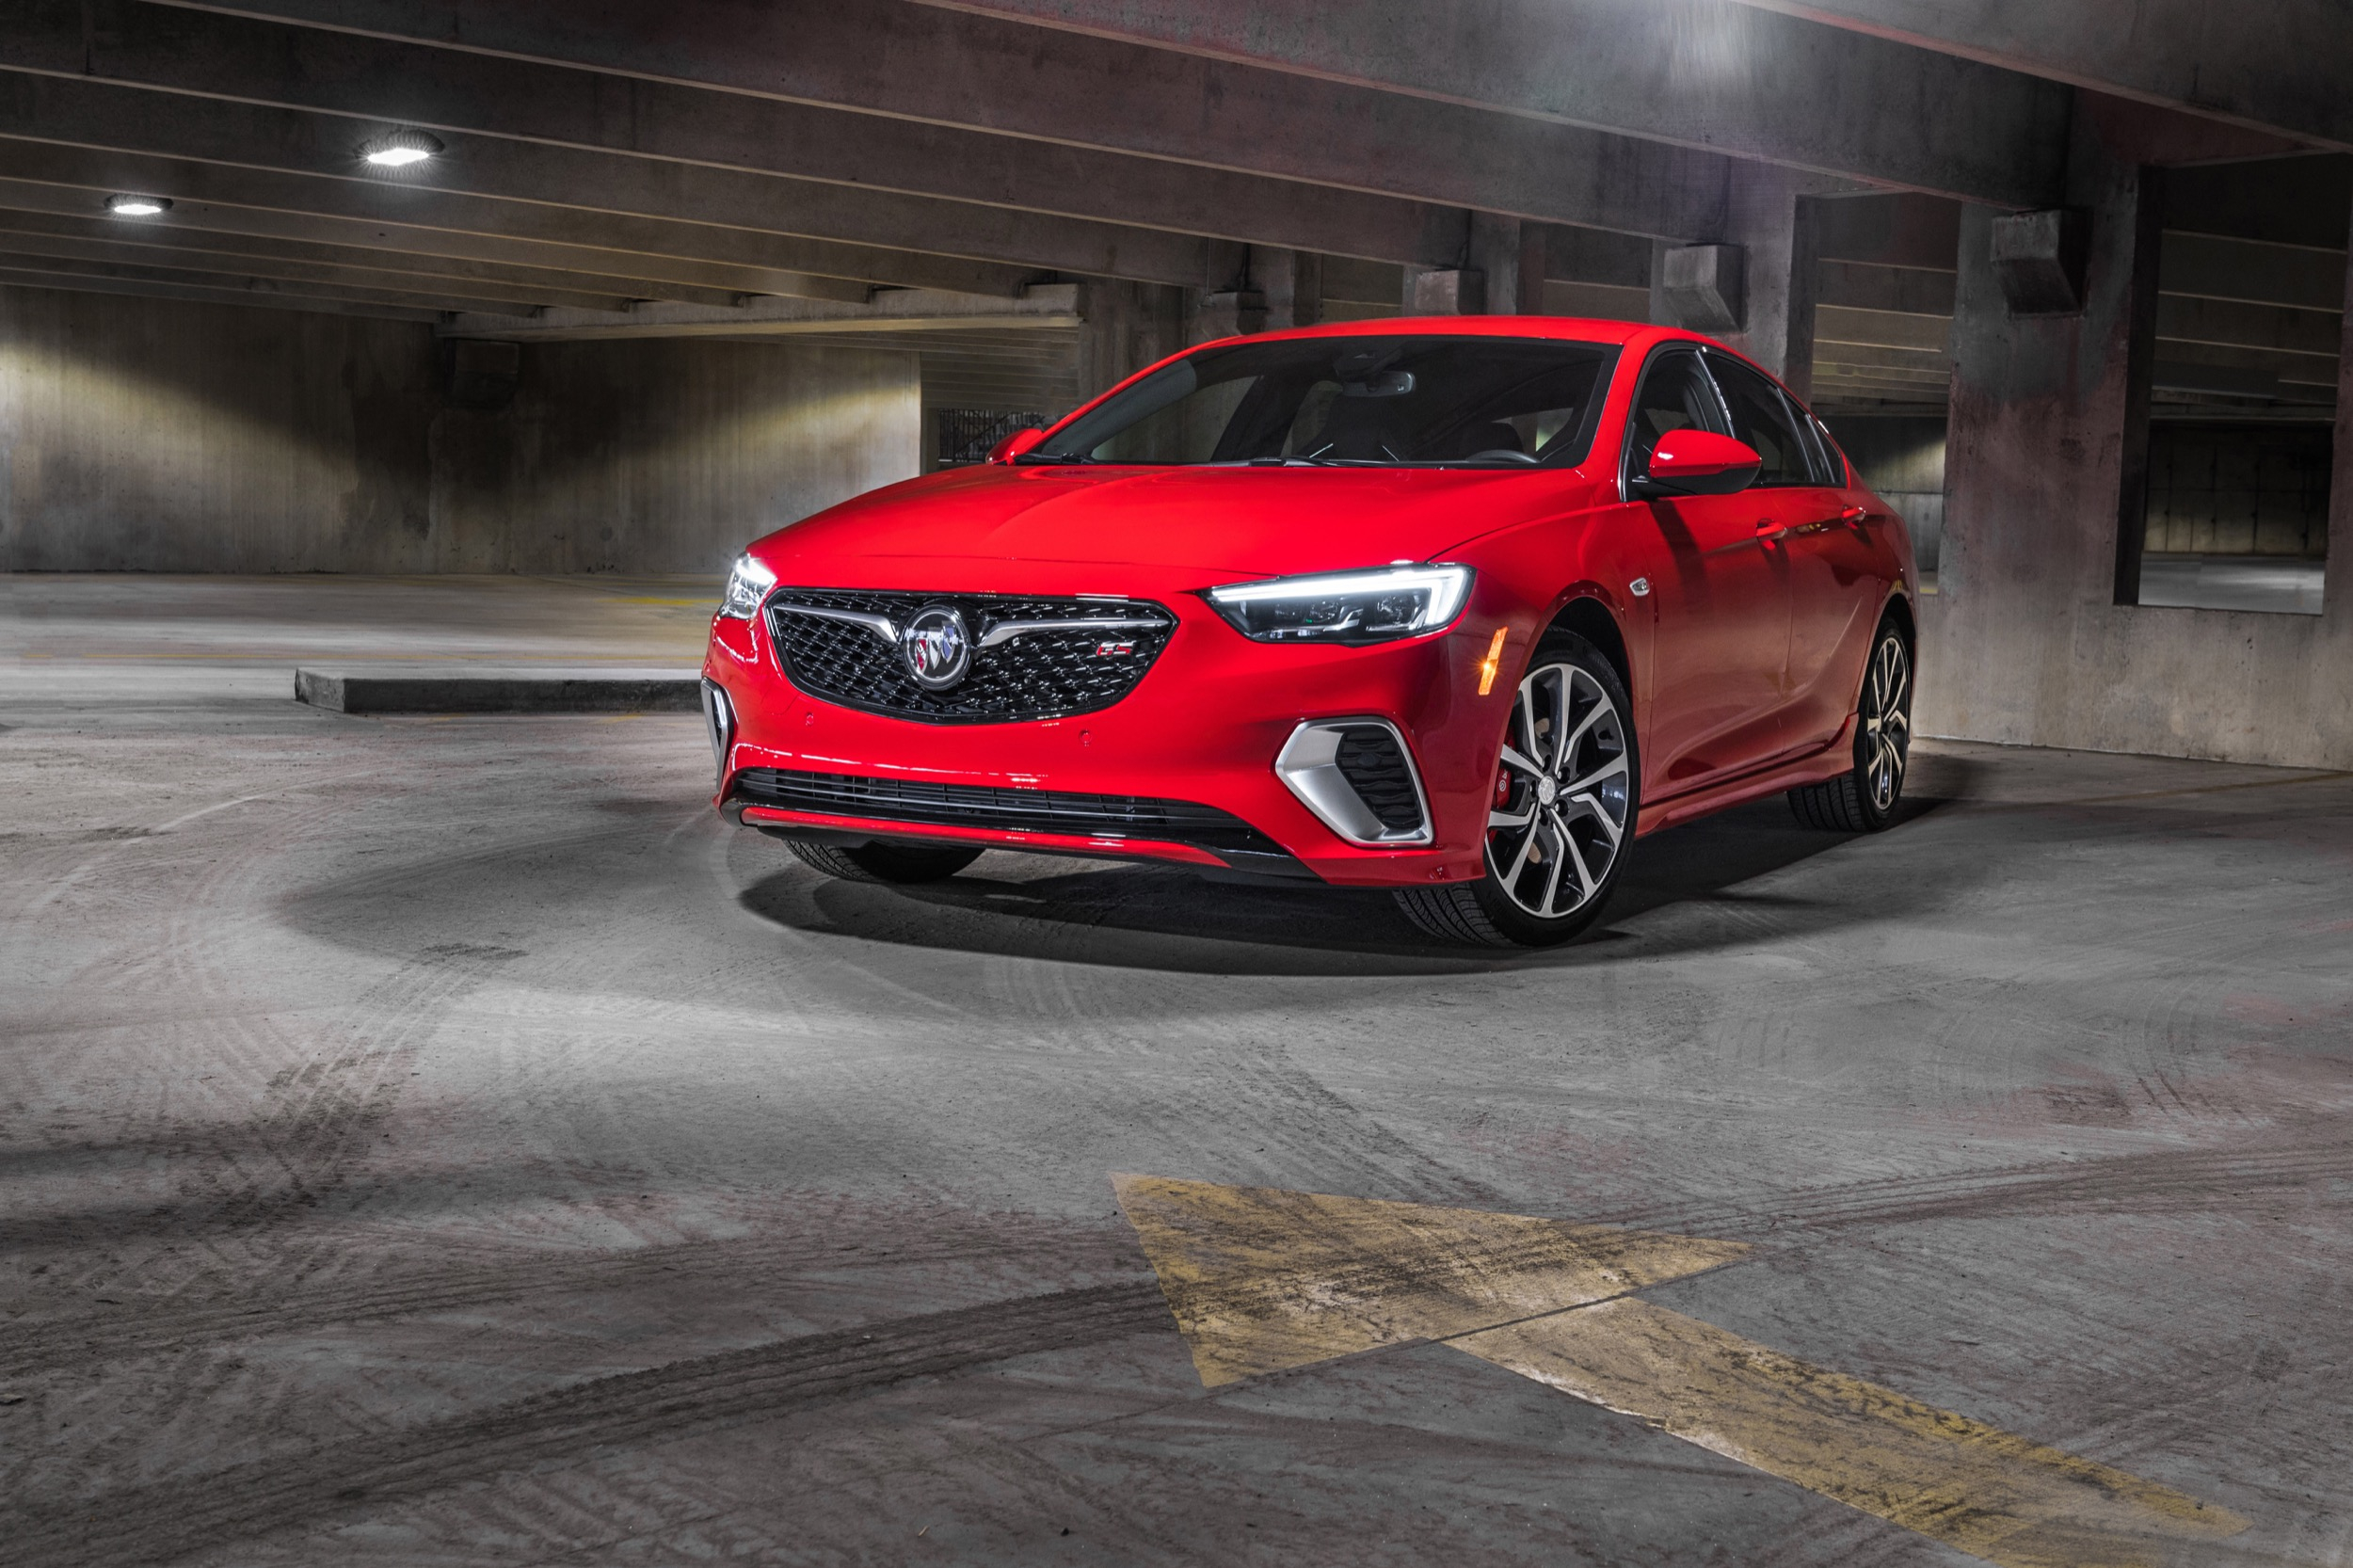 2022 Buick Regal Info, Specs, Wiki | Gm Authority Where Is The 2022 Buick Regal Built